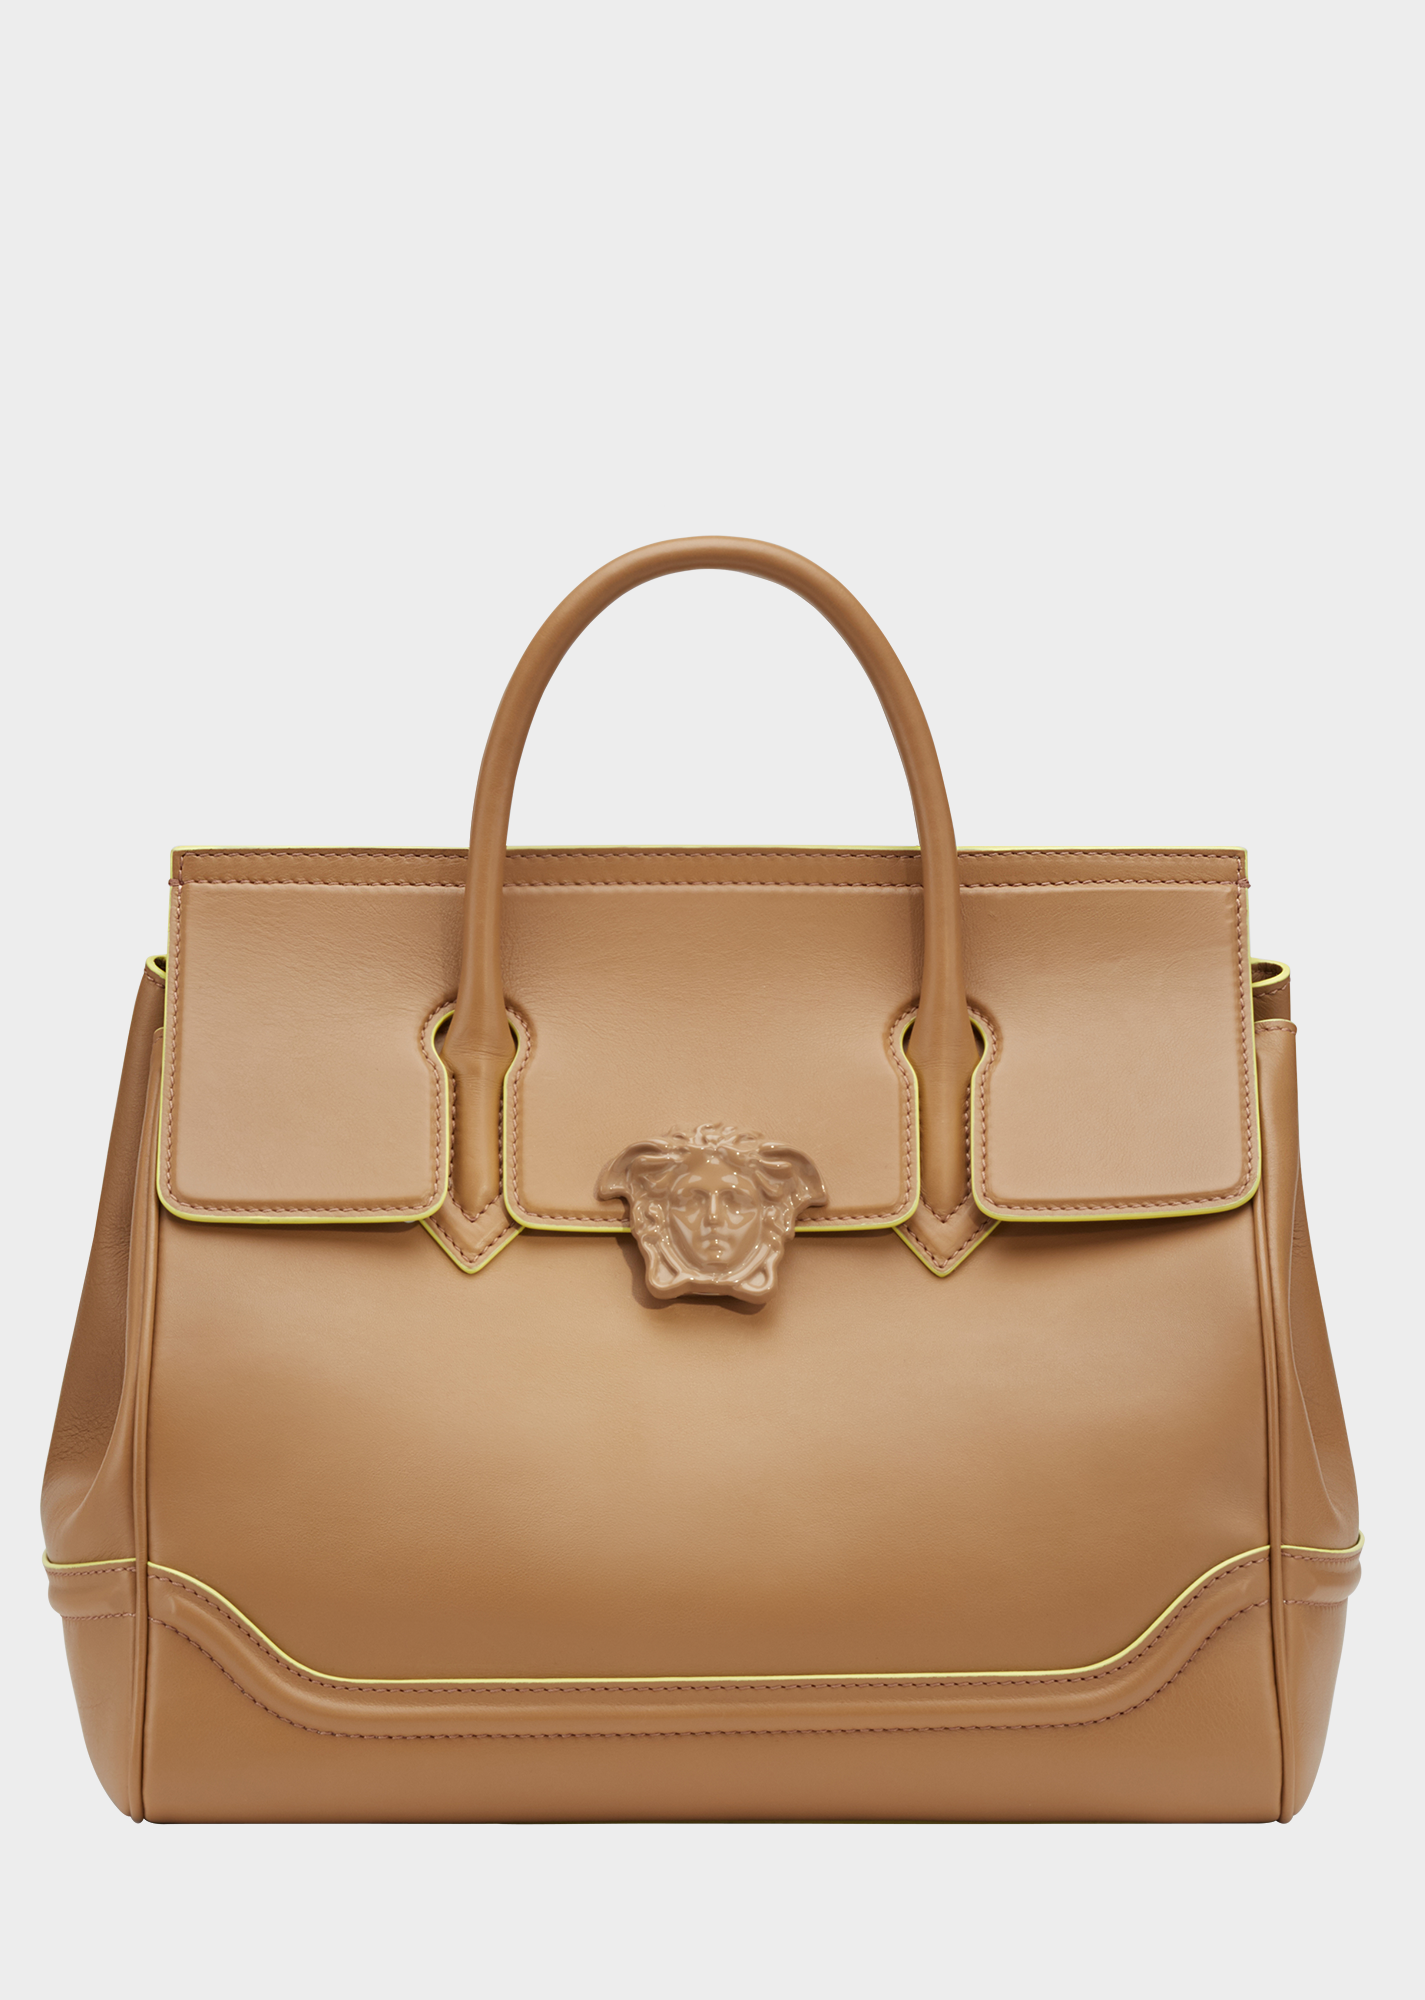 5619d2e66c84 Versace Palazzo Empire Large Bag for Women